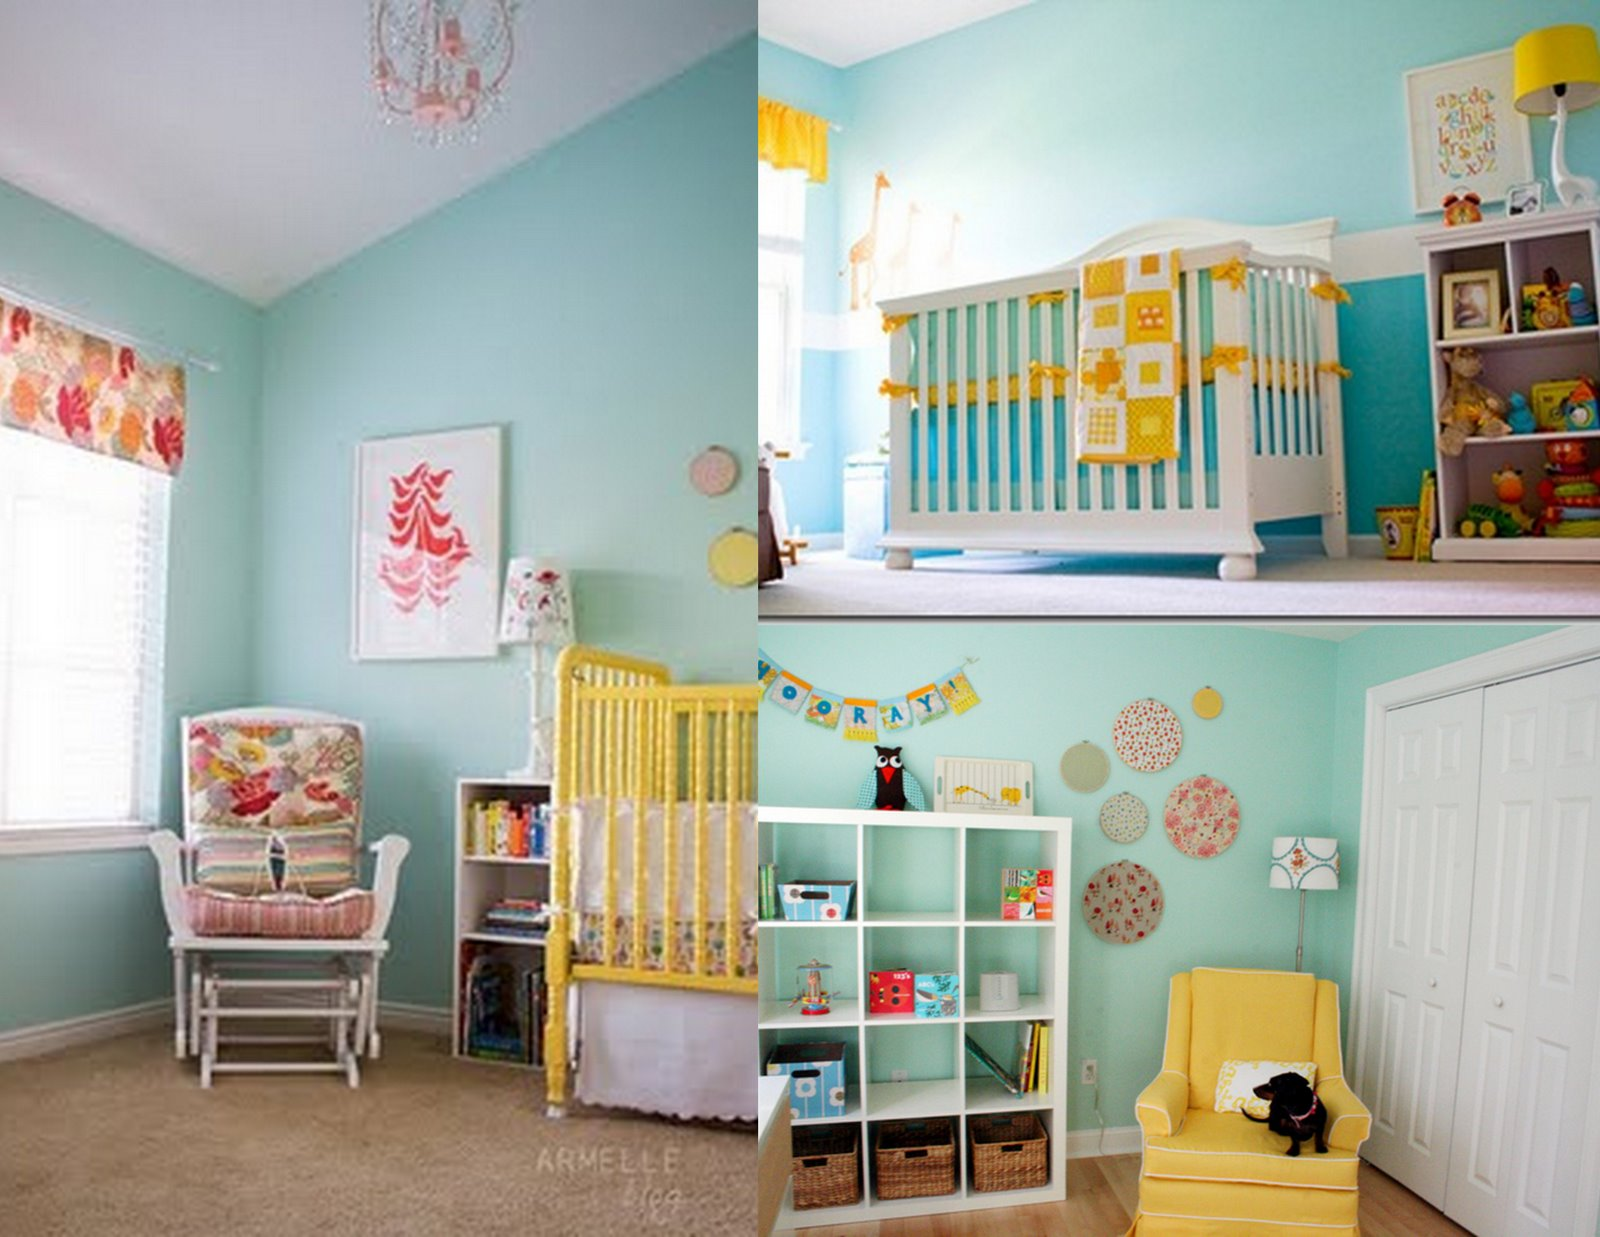 20 Reasons to Paint Your Nursery Blue - Project Nursery |Green And Yellow Baby Room